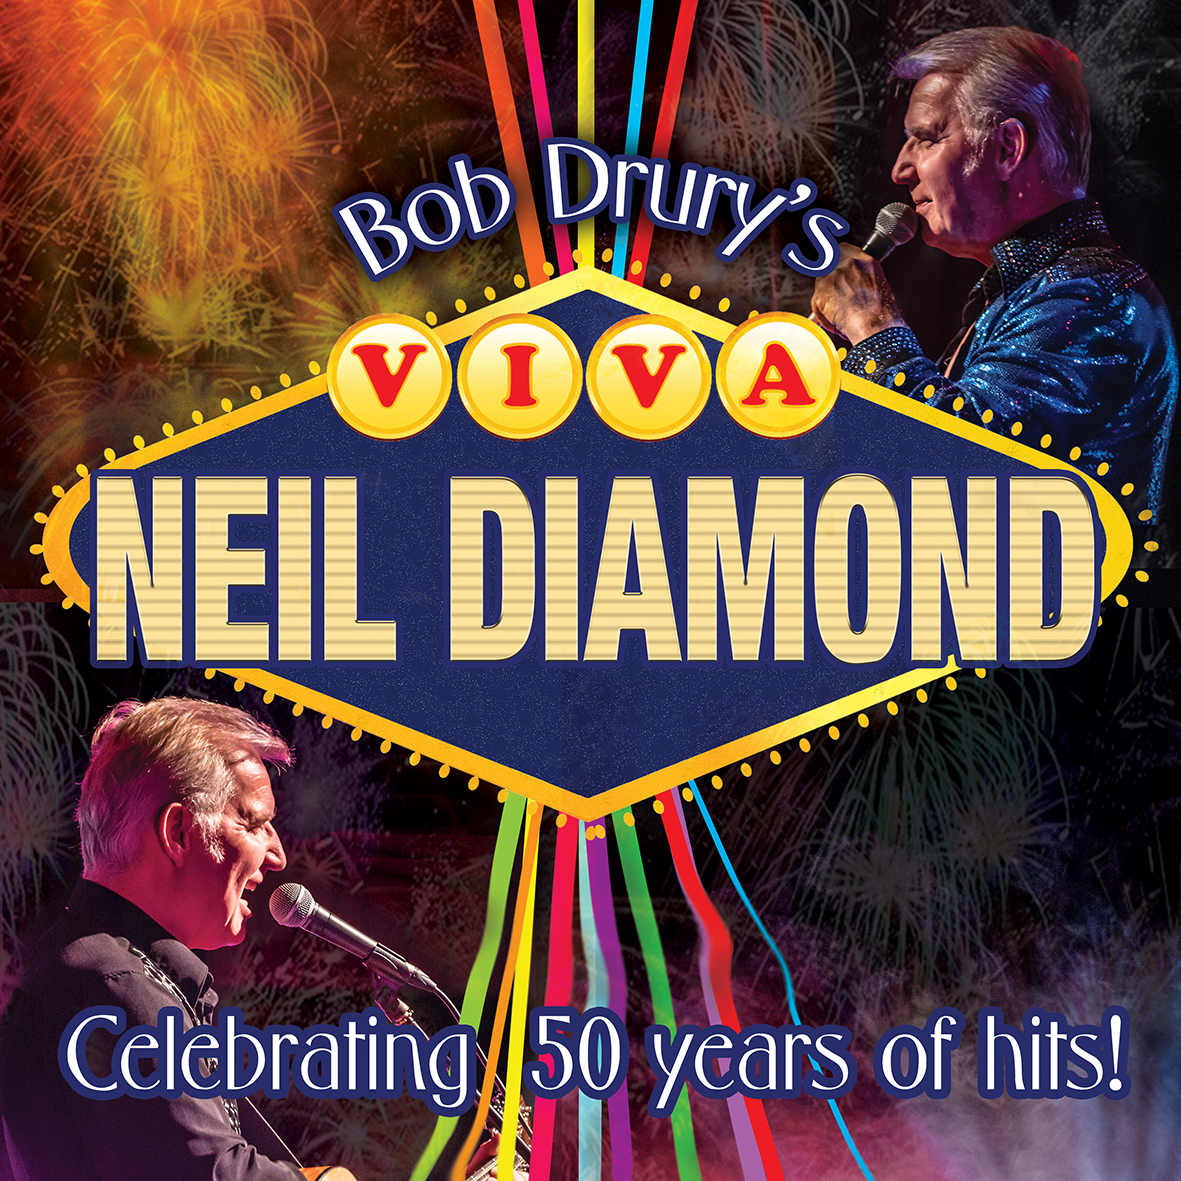 "Bob Drury's 'VIVA NEIL DIAMOND' Whilst performing in Las Vegas two years ago Bob Drury wasdescribed  ""one of the world'sfinest vocal tributes to Neil Diamond"" and he's now back touring the UKwith his new show celebrating the legendary Neil Diamond  and his incredible back catalogue of songs.  Bob Drury's one-man show is an absolute'must-see' for any Diamond fans.  Prepareto be blown away by his vocal likeness which has been delighting audiencesaround the world.  This year's show includesall  the favourites such as Cracklin'Rosie, America, Love on the Rocks, Play Me, Hello Again, Forever in Blue Jeans,Beautiful Noise, I'm a Believer, Red Red Wine and of course Sweet Caroline,plus Neil Diamond's UK hit Pretty Amazing Grace and a few lesser known songsthat are sure to become your favourites by the end of the evening.  A fantastic evening guaranteed! ""an uncanny resemblance to Neil Diamond's voice. That senttingles down my spine Bob!""  Debbie McGee, BBC Radio Berkshire ""Bob, it was great hearing you last night and I was totallyblown away by your level of musicianship on guitar"" Mark LeVang, keyboard player with Neil Diamond's band  ""Bob is well established as one of the world's finest vocaltributes to Neil Diamond"" SteveTatone, Film Producer, Midnight Pass Productions, USA ""If I didn't know better I'd have said that was Neil Diamondsinging"" Pat Marsh, BBC Radio Kent  ""Without doubt, the best Neil Diamond tribute in the UK. The vocalaccuracy is astonishing!"" – Chris Neilson (Artistic Director) First &Foremost Entertainment Ltd ""….oozing class"" Nolan Dean, Cruise Director, M/V Island Star ""Neil Diamond fans will be delighted with the sound-alikequality and the nifty guitar work"" UK Cabaret Magazine£16"